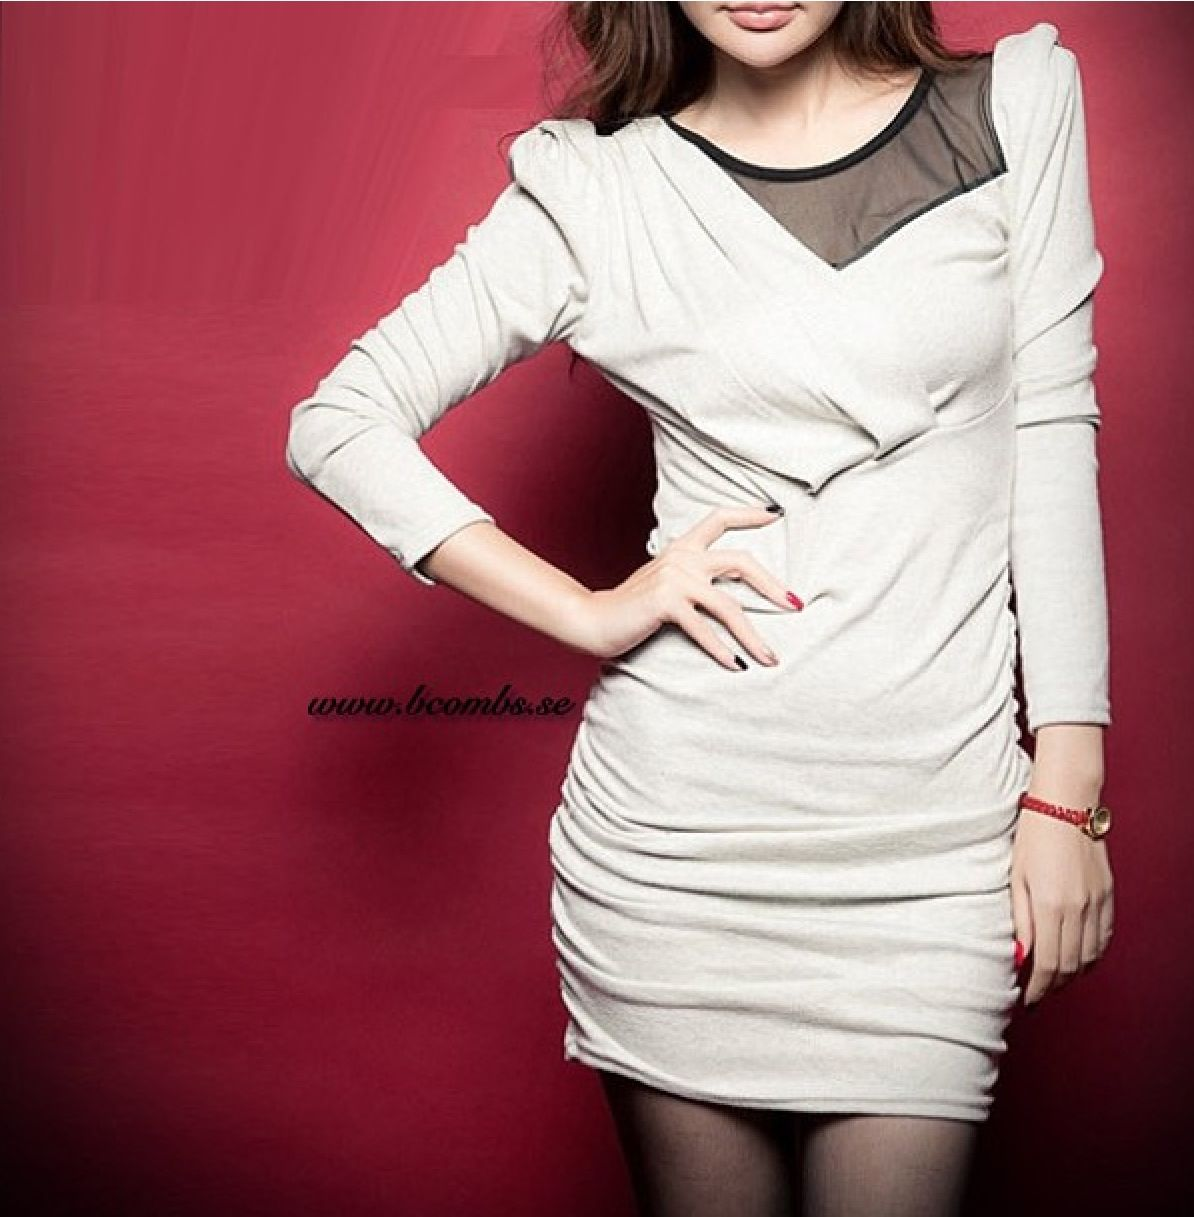 Bcombs fashion sexy style bcombs clothes colors dress white